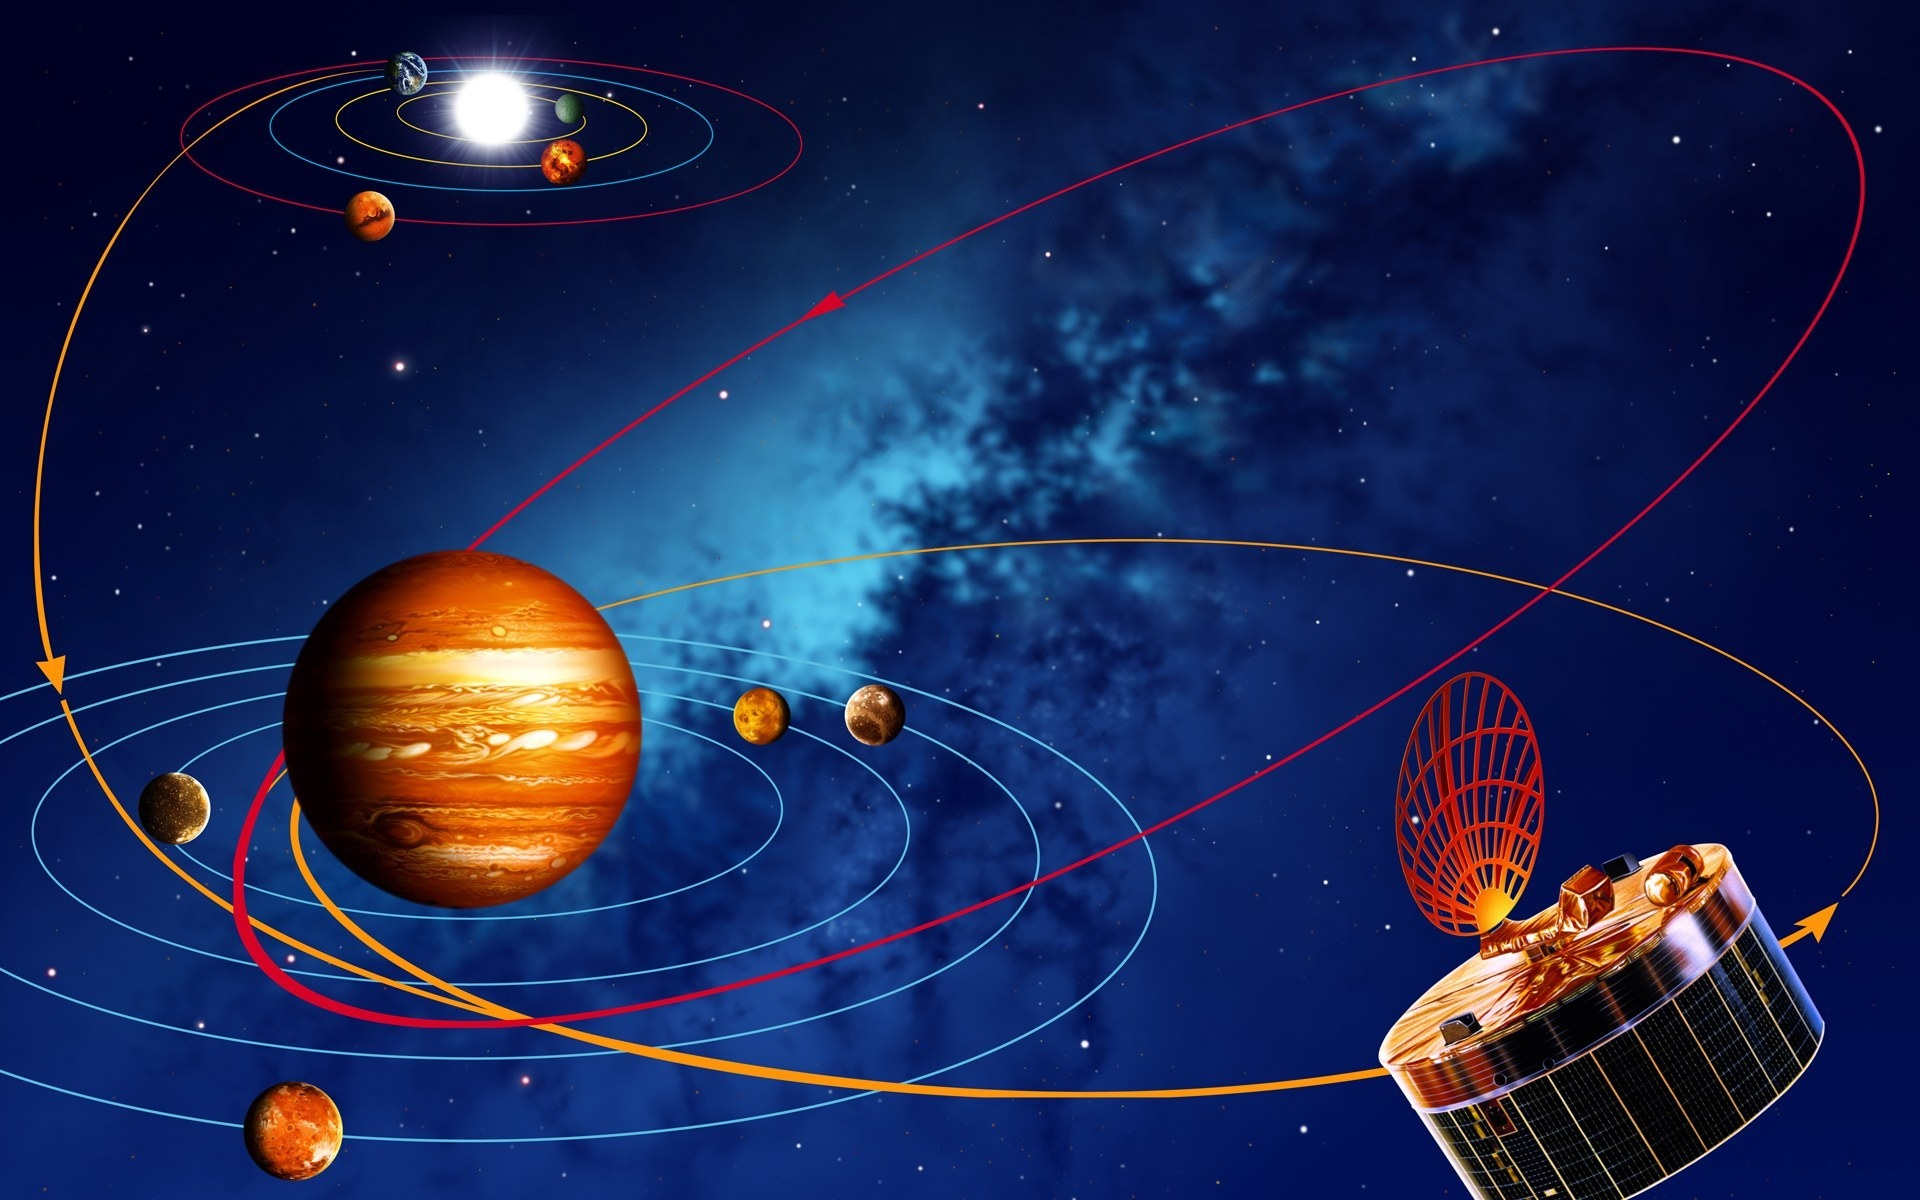 planets orbiting the sun wallpaper - photo #18